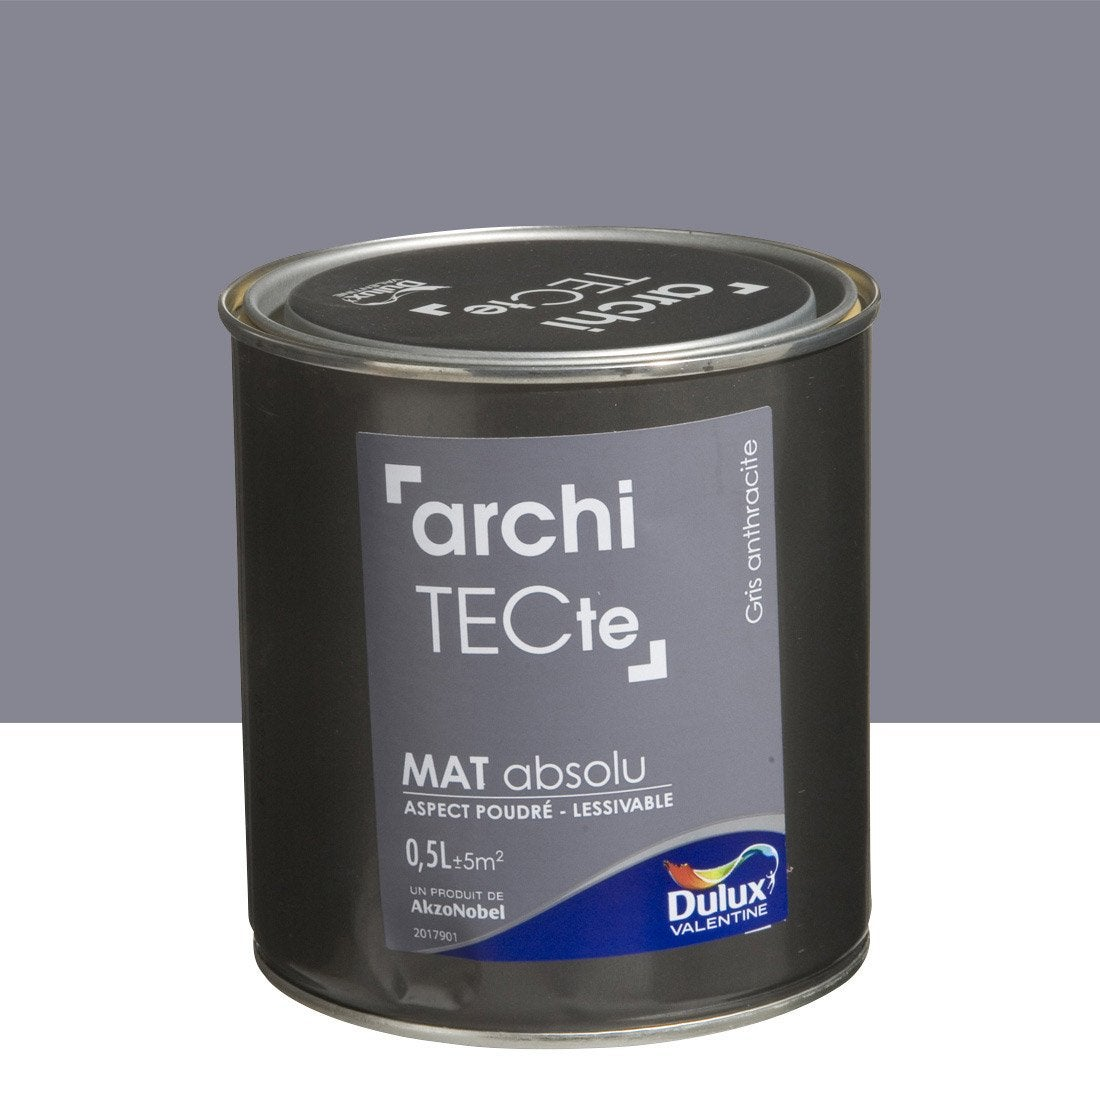 peinture multisupports architecte dulux valentine gris anthracite 0 5 l leroy merlin. Black Bedroom Furniture Sets. Home Design Ideas